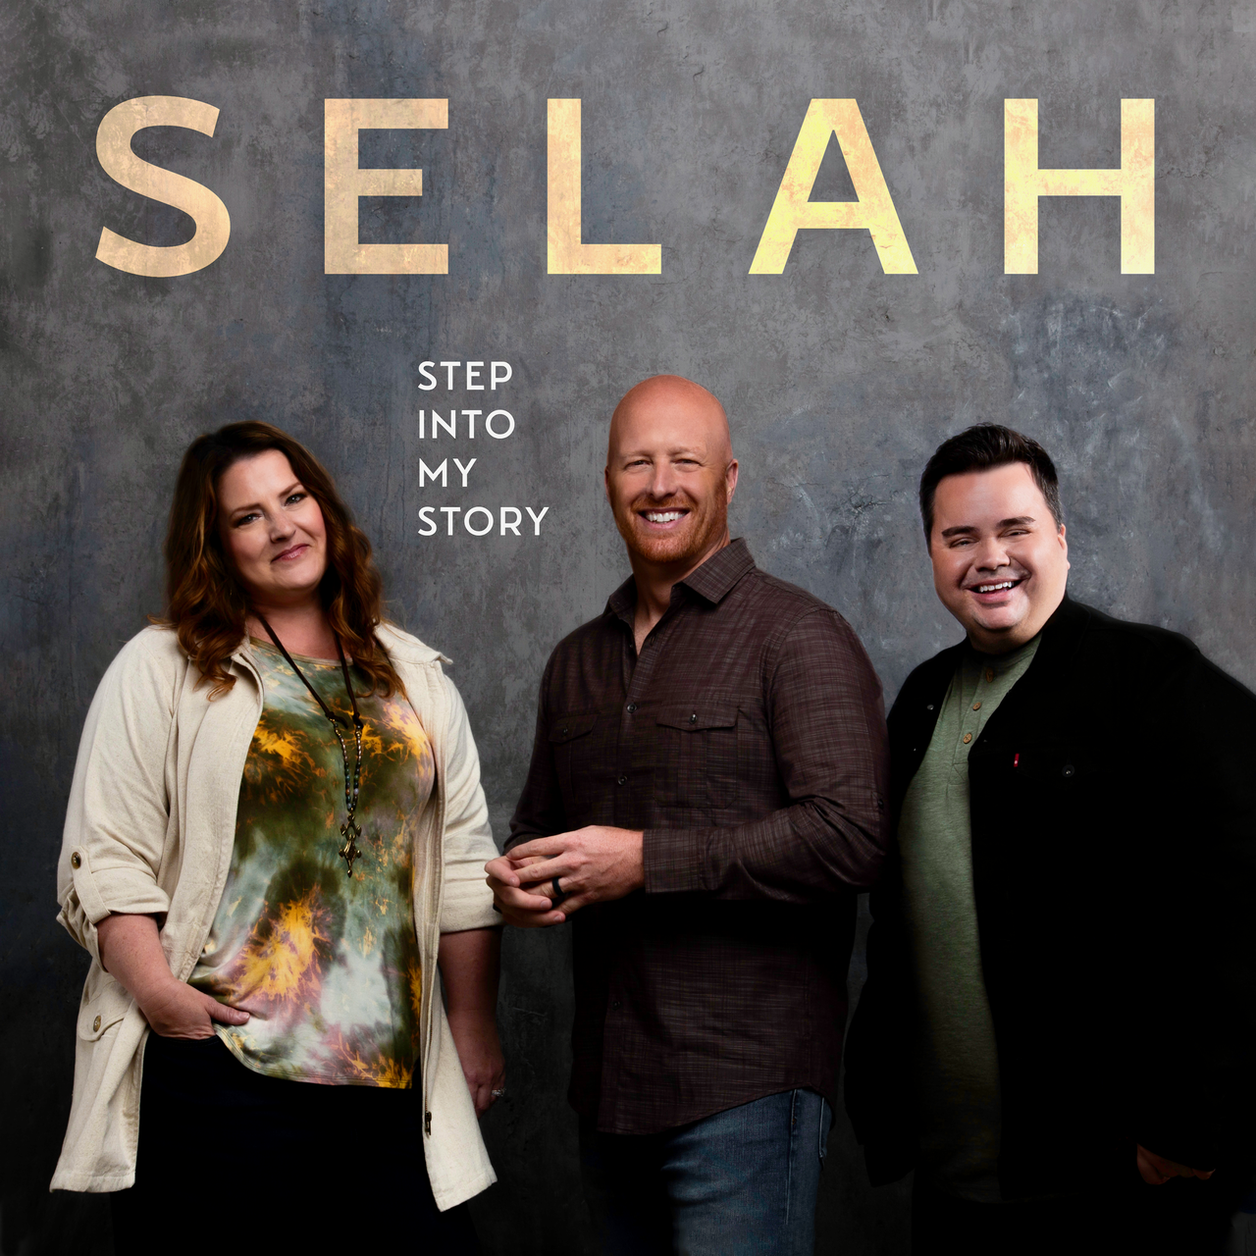 Music News: Reflecting Influences from the U.S., Congo and India, SELAH's Music and Outreach Pours Out on Nov. 6 Album, 'Step Into My Story'